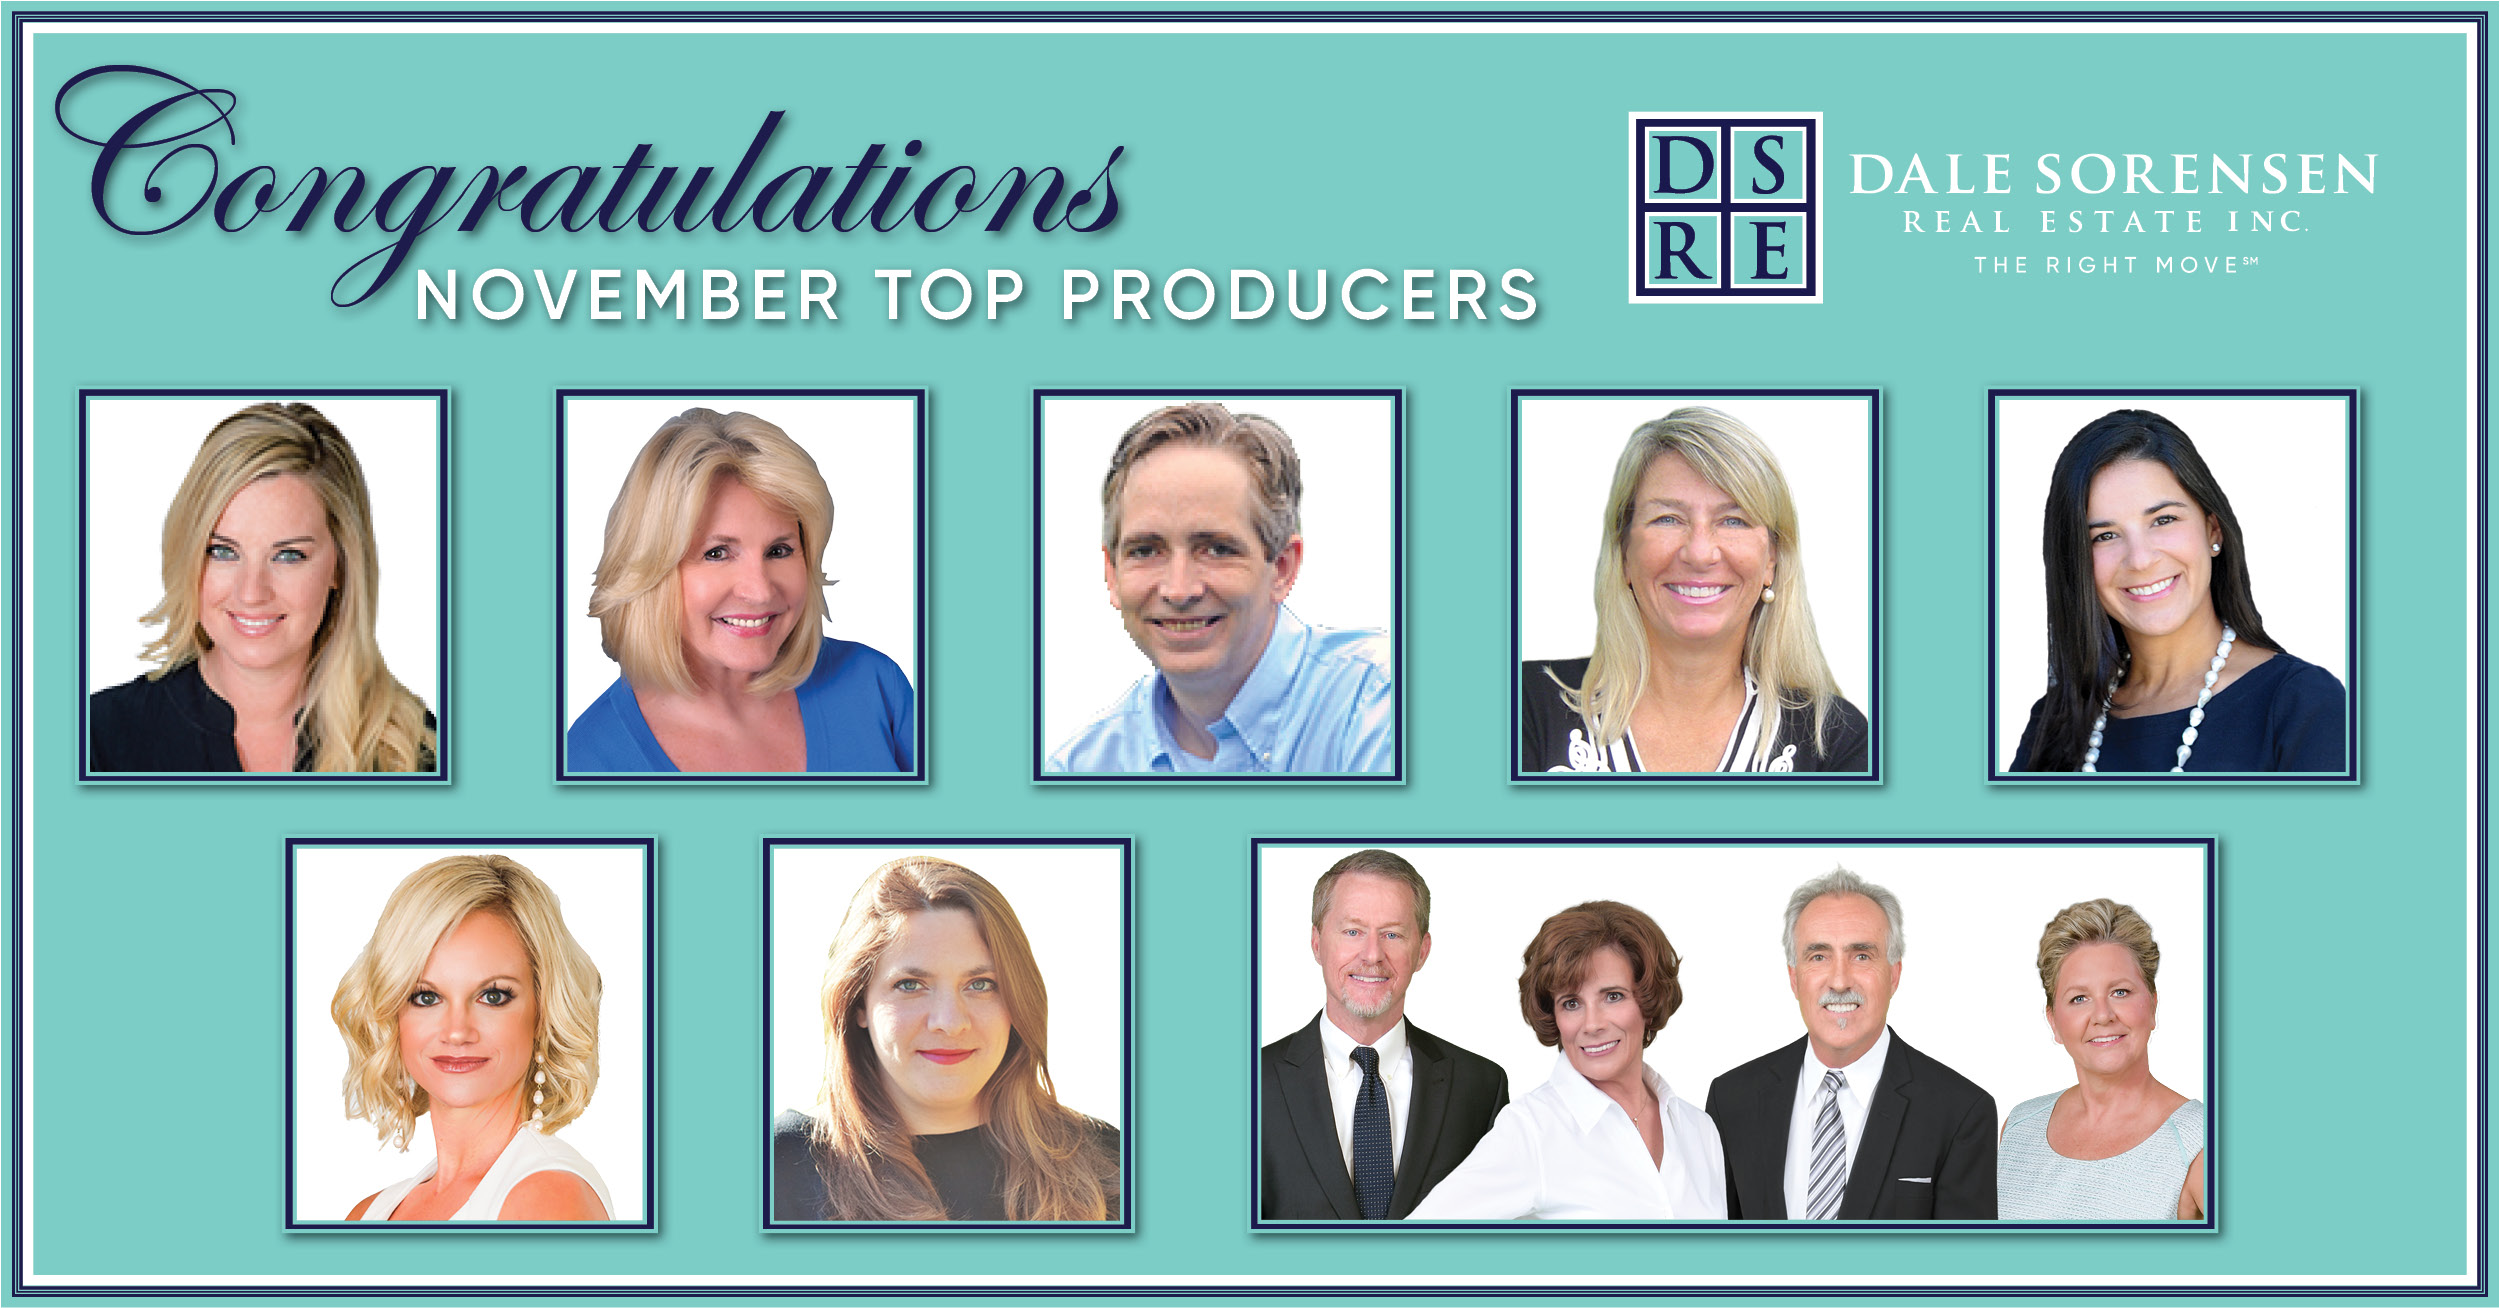 Congratulations November Top Producers DSRE Dale Sorensen Real Estate Inc. THE RIGHT MOVE